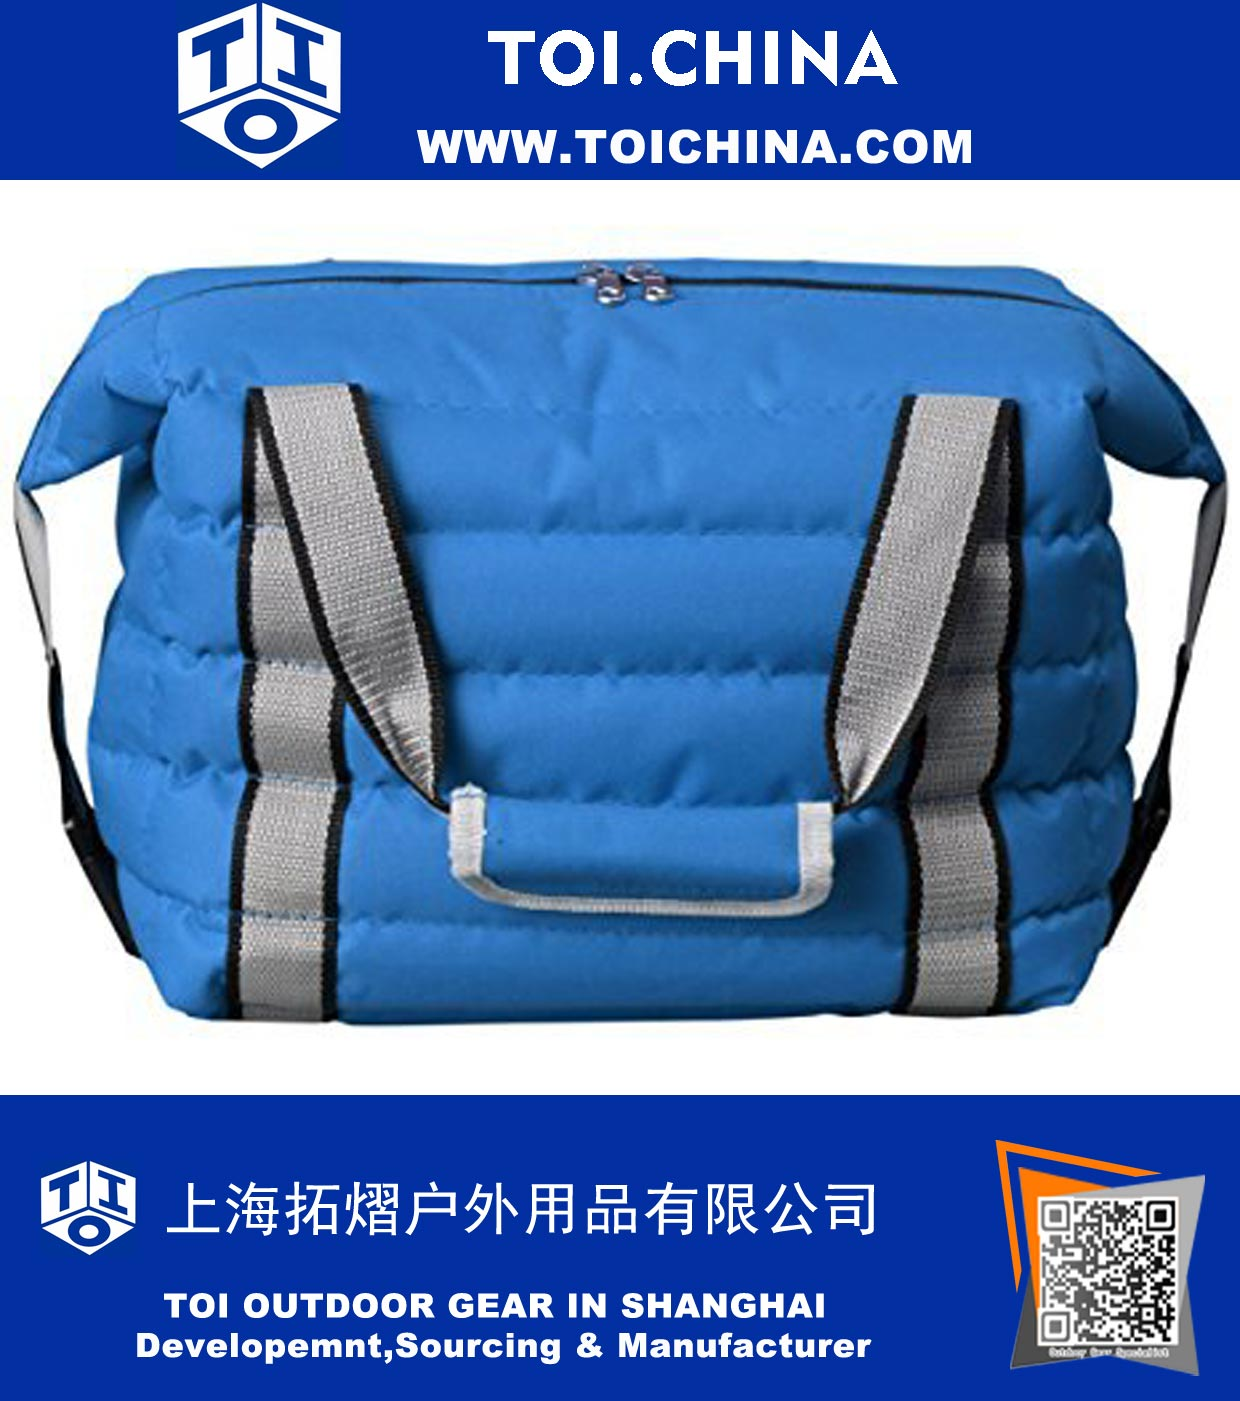 1f6fe3ab3f7d Heavy-Duty Soft Sided Collapsible Cooler Bag - Holds 16 Cans -Lightweight Thermal  Cooler with Thick Lining And Insulation